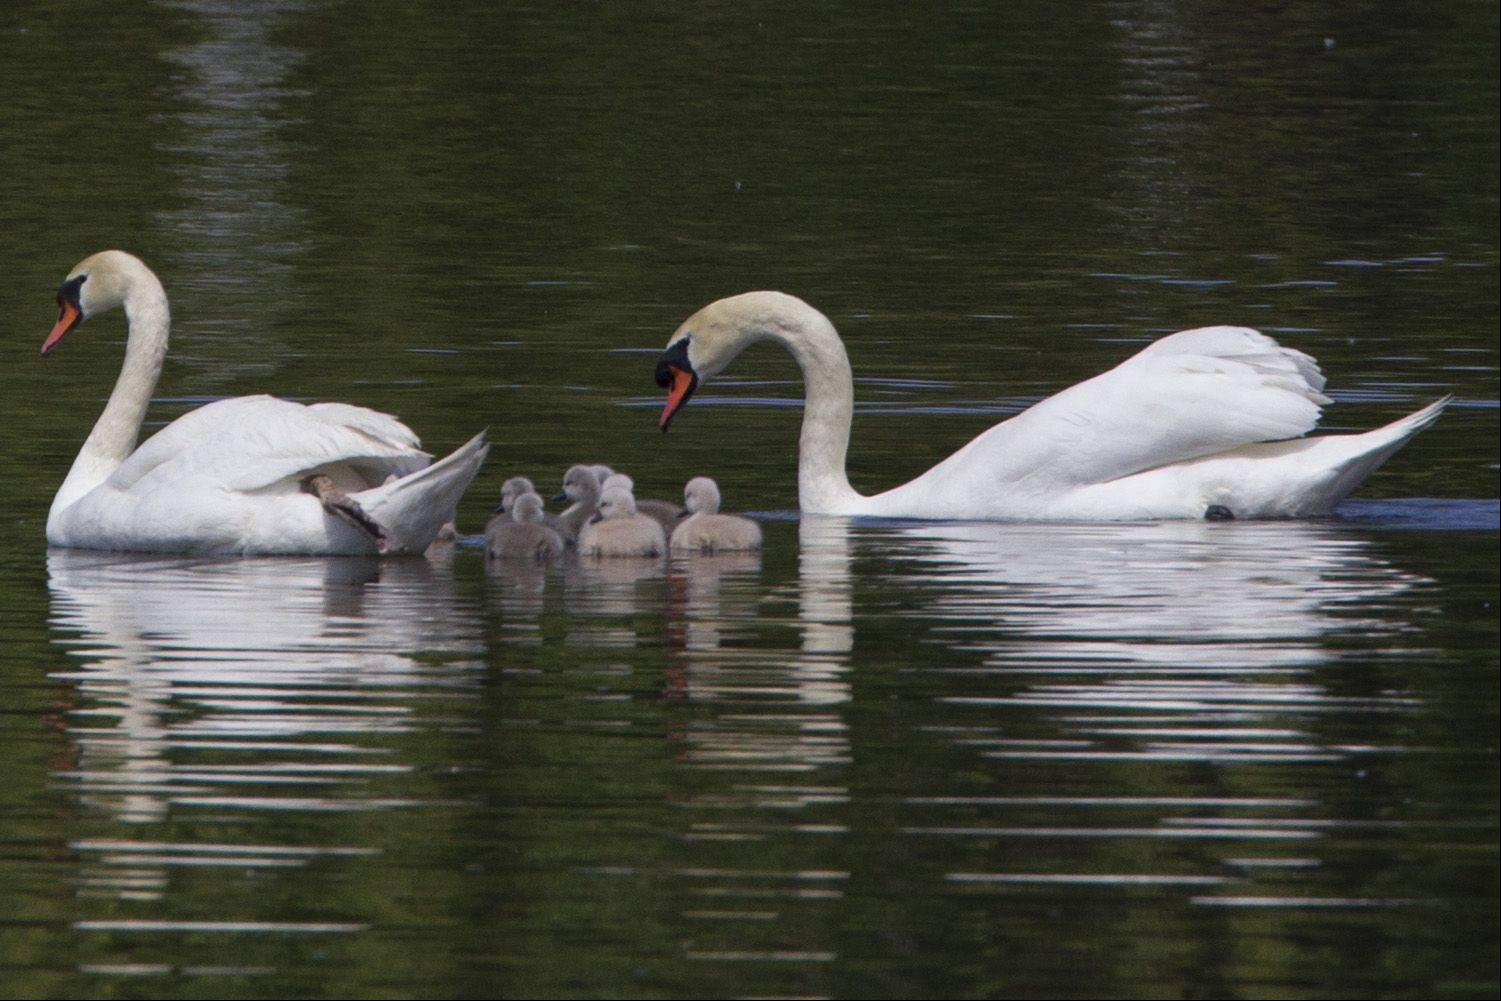 Louis and Serena watch over their eight babies in the Schaumburg municipal pond.